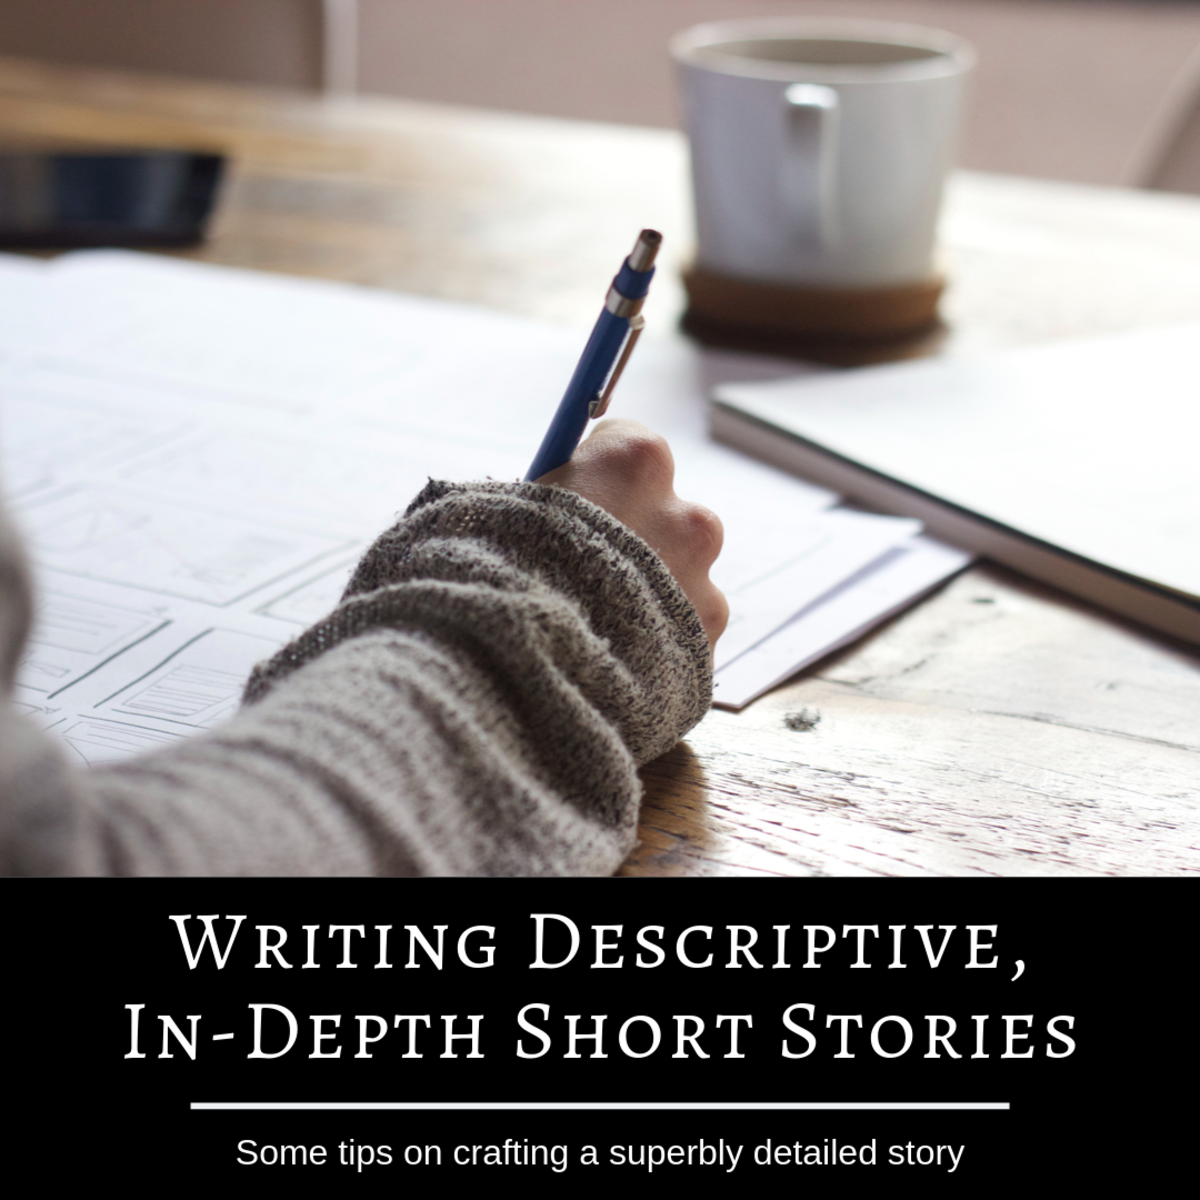 How to Write an In-Depth and Descriptive Short Story